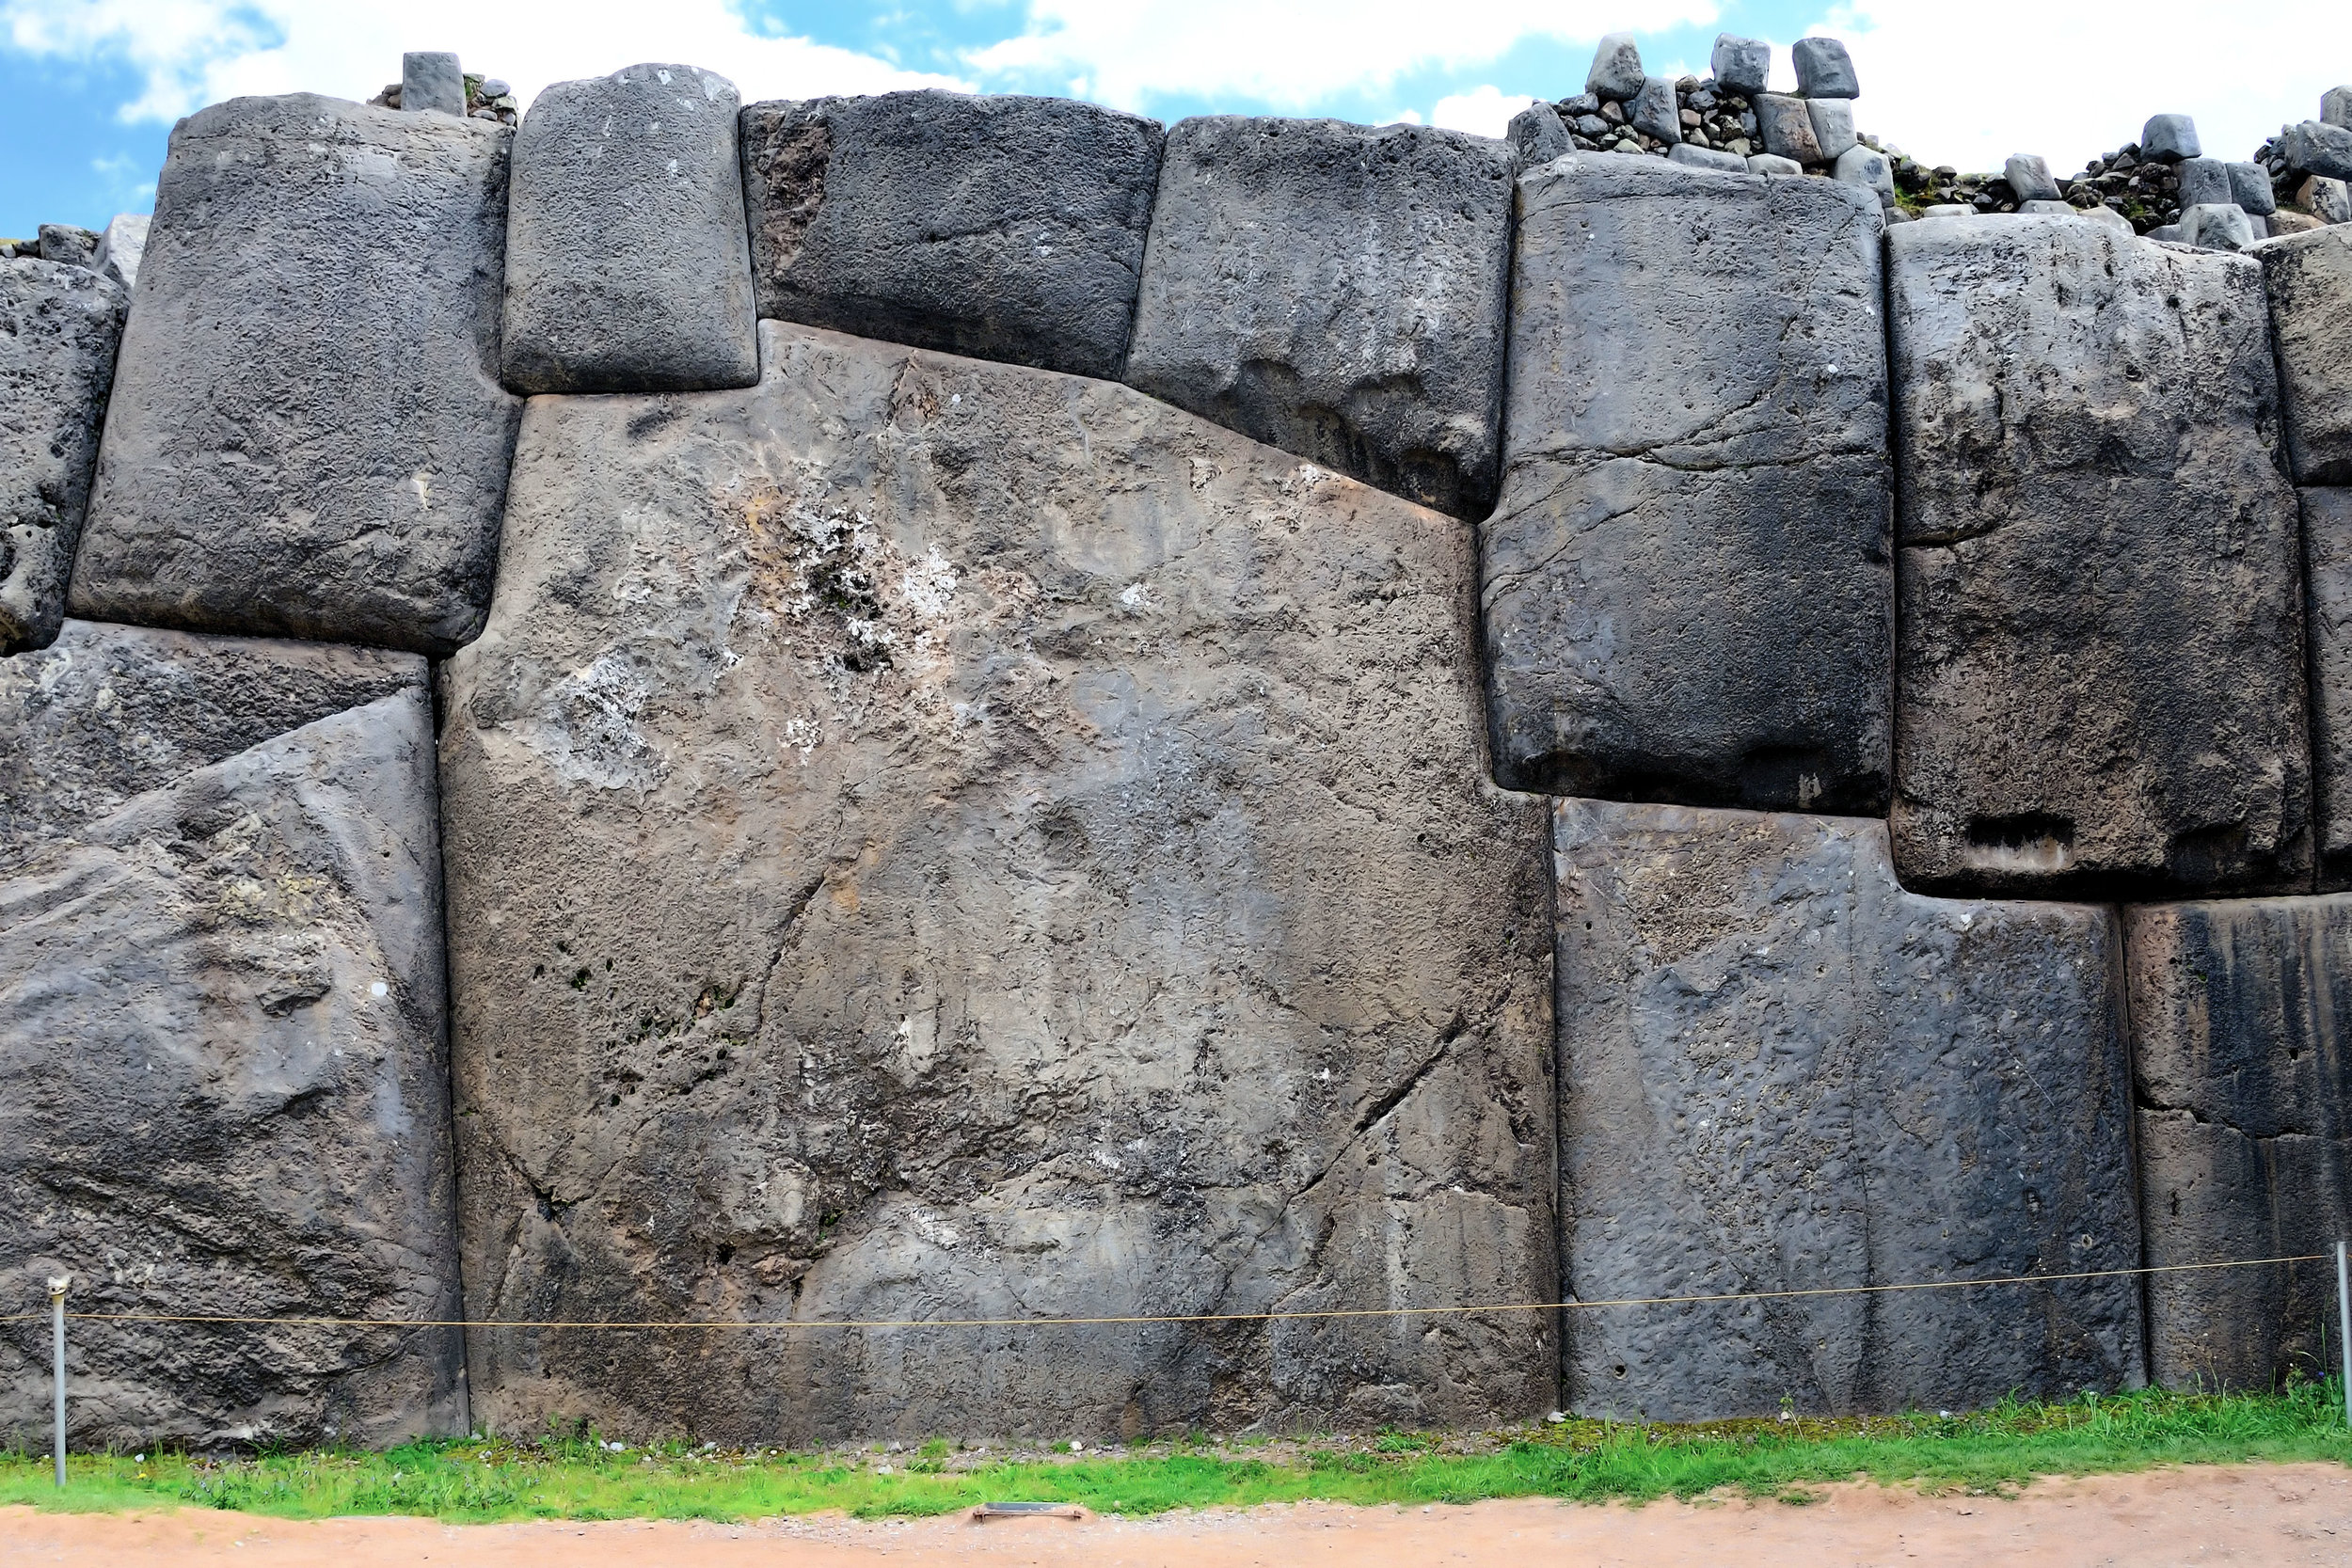 This wall represents the remnants of an Incan temple just outside of Cusco. Look at the large stone in the middle. It weighs 120 metric tons. It was moved to this site from a quarry 1 mile away. The Incas did not use wheels during the transport of building materials. Why not use smaller pieces of granite? Why the tremendous effort to move such a large stone?